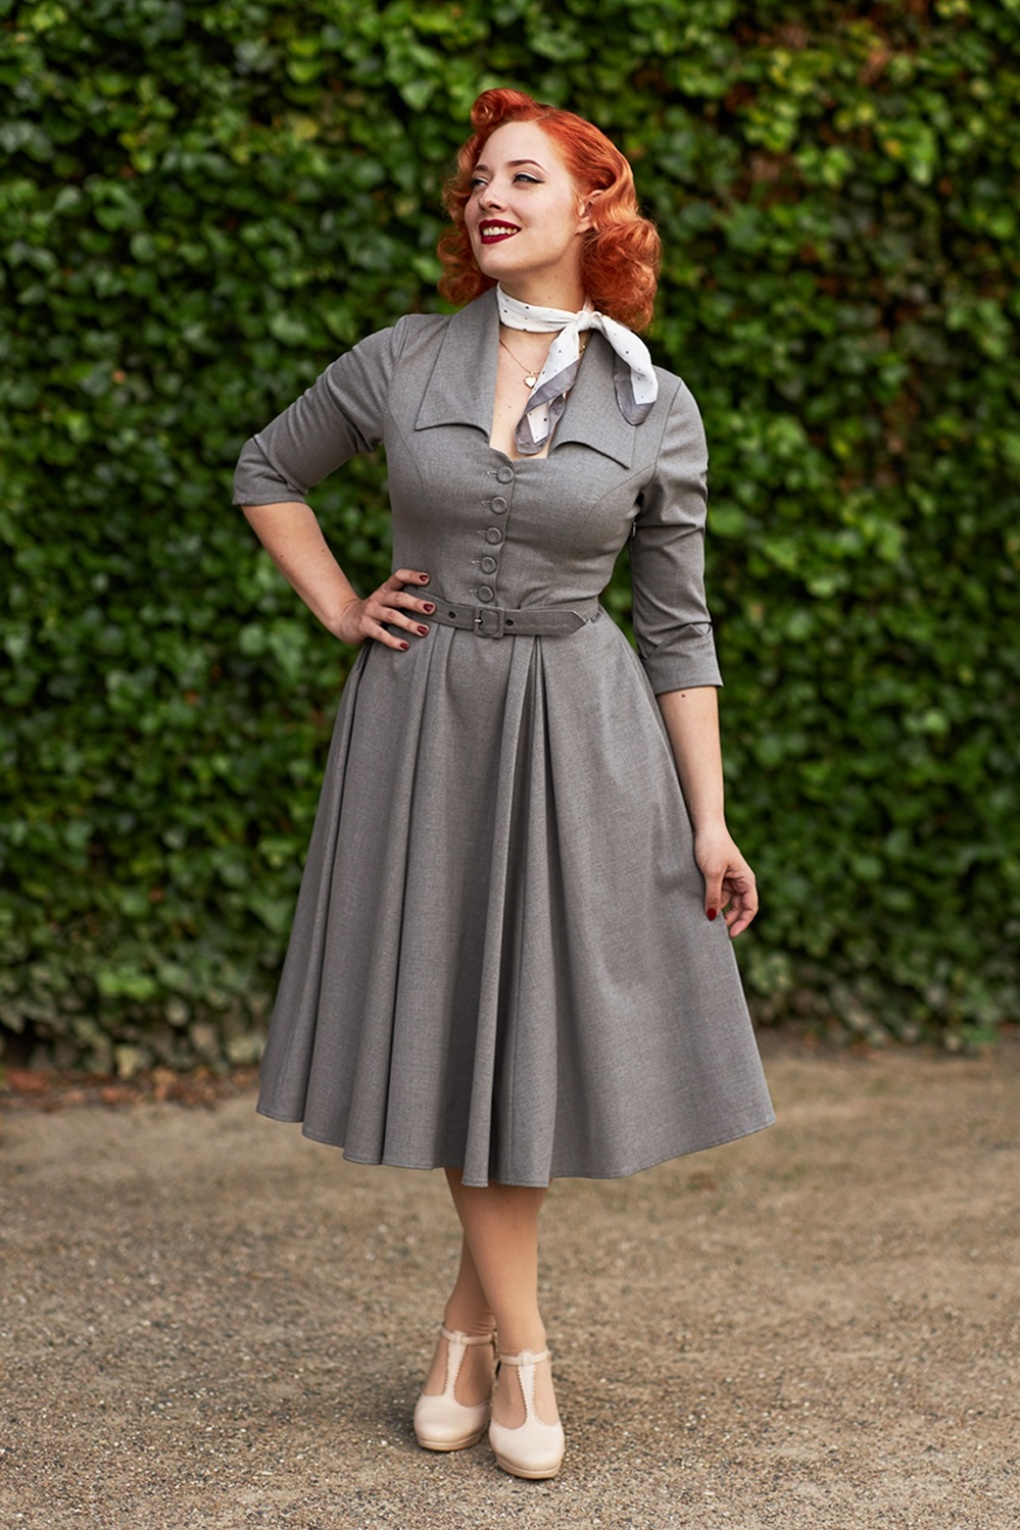 1950s Housewife Dress   50s Day Dresses 50s Leontine Swing Dress in Grey £97.91 AT vintagedancer.com